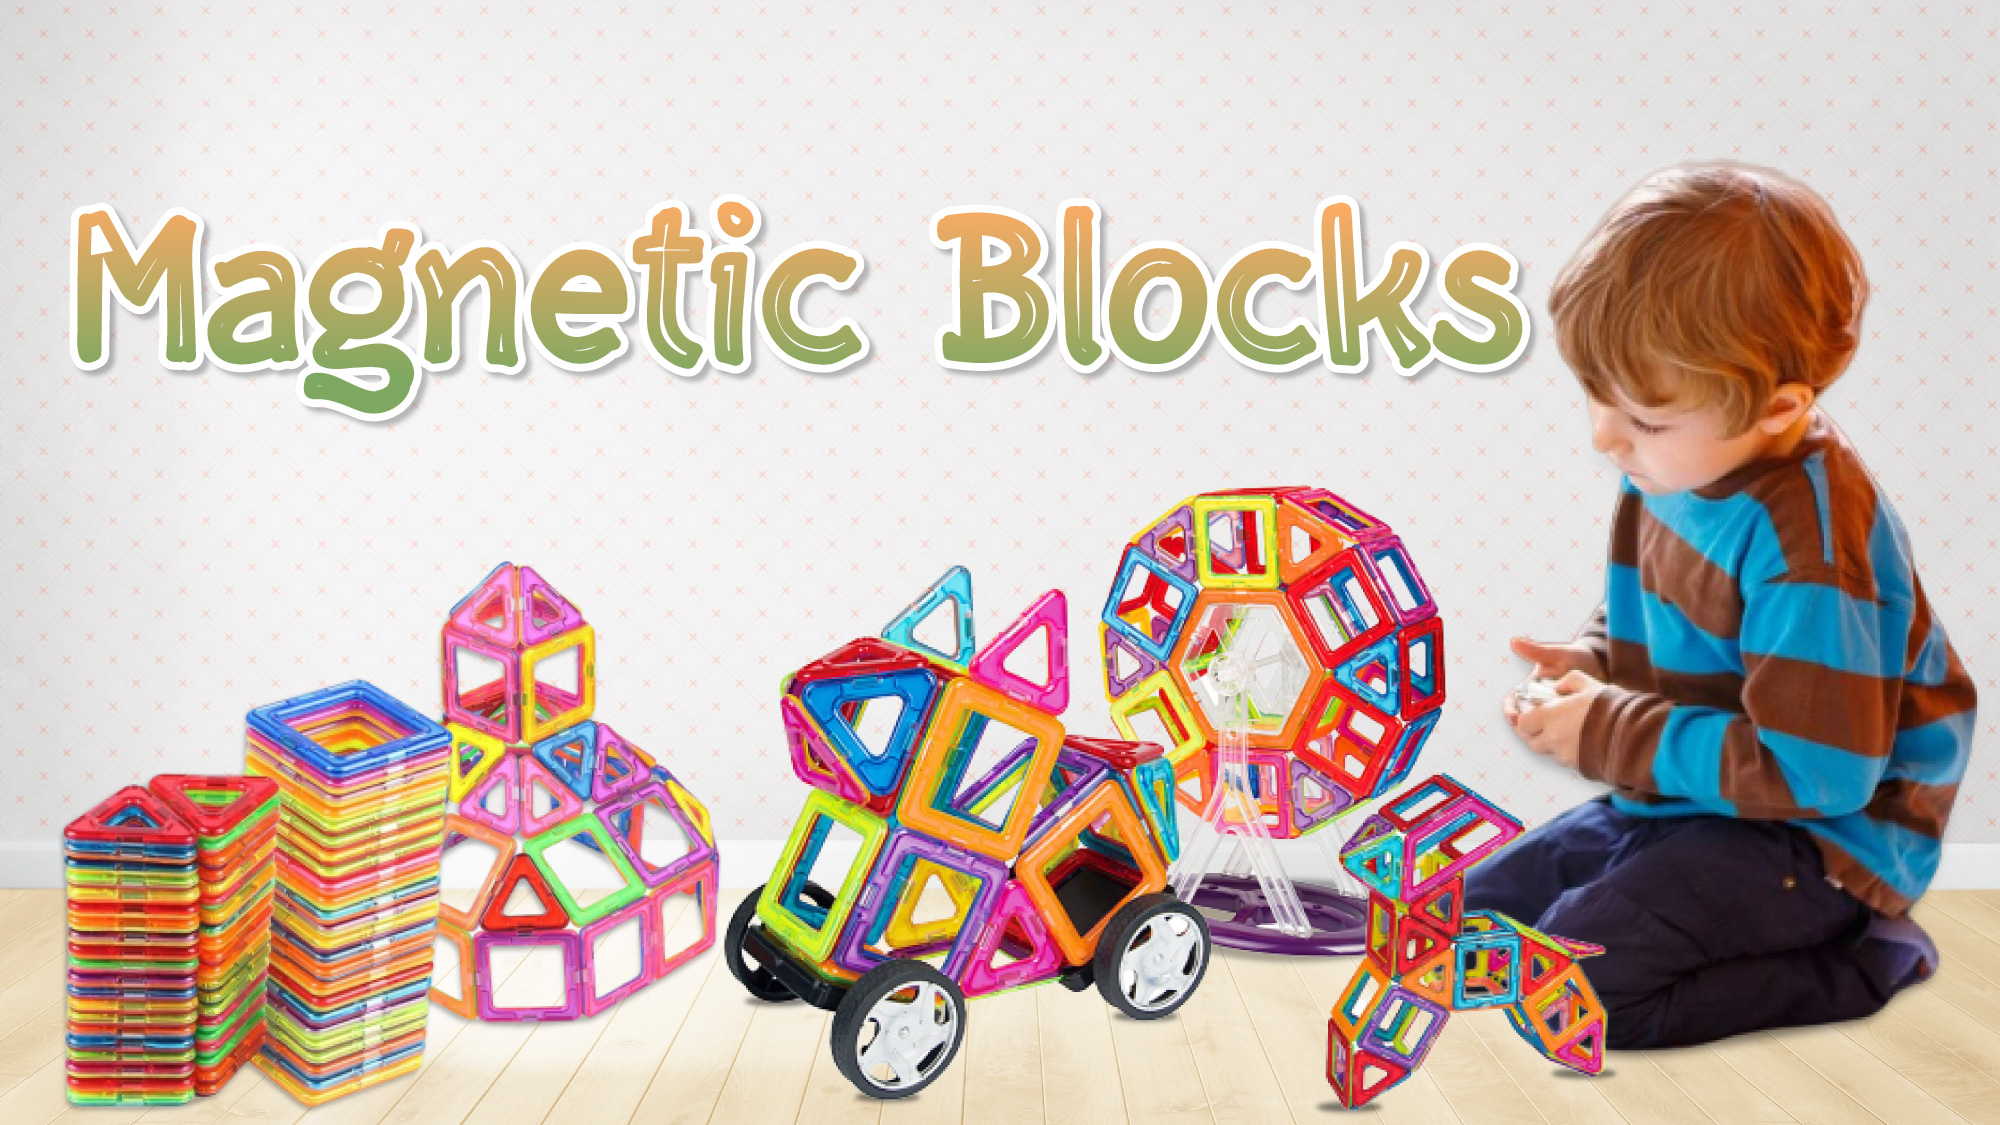 What are the Educational Benefits of Magnetic Blocks